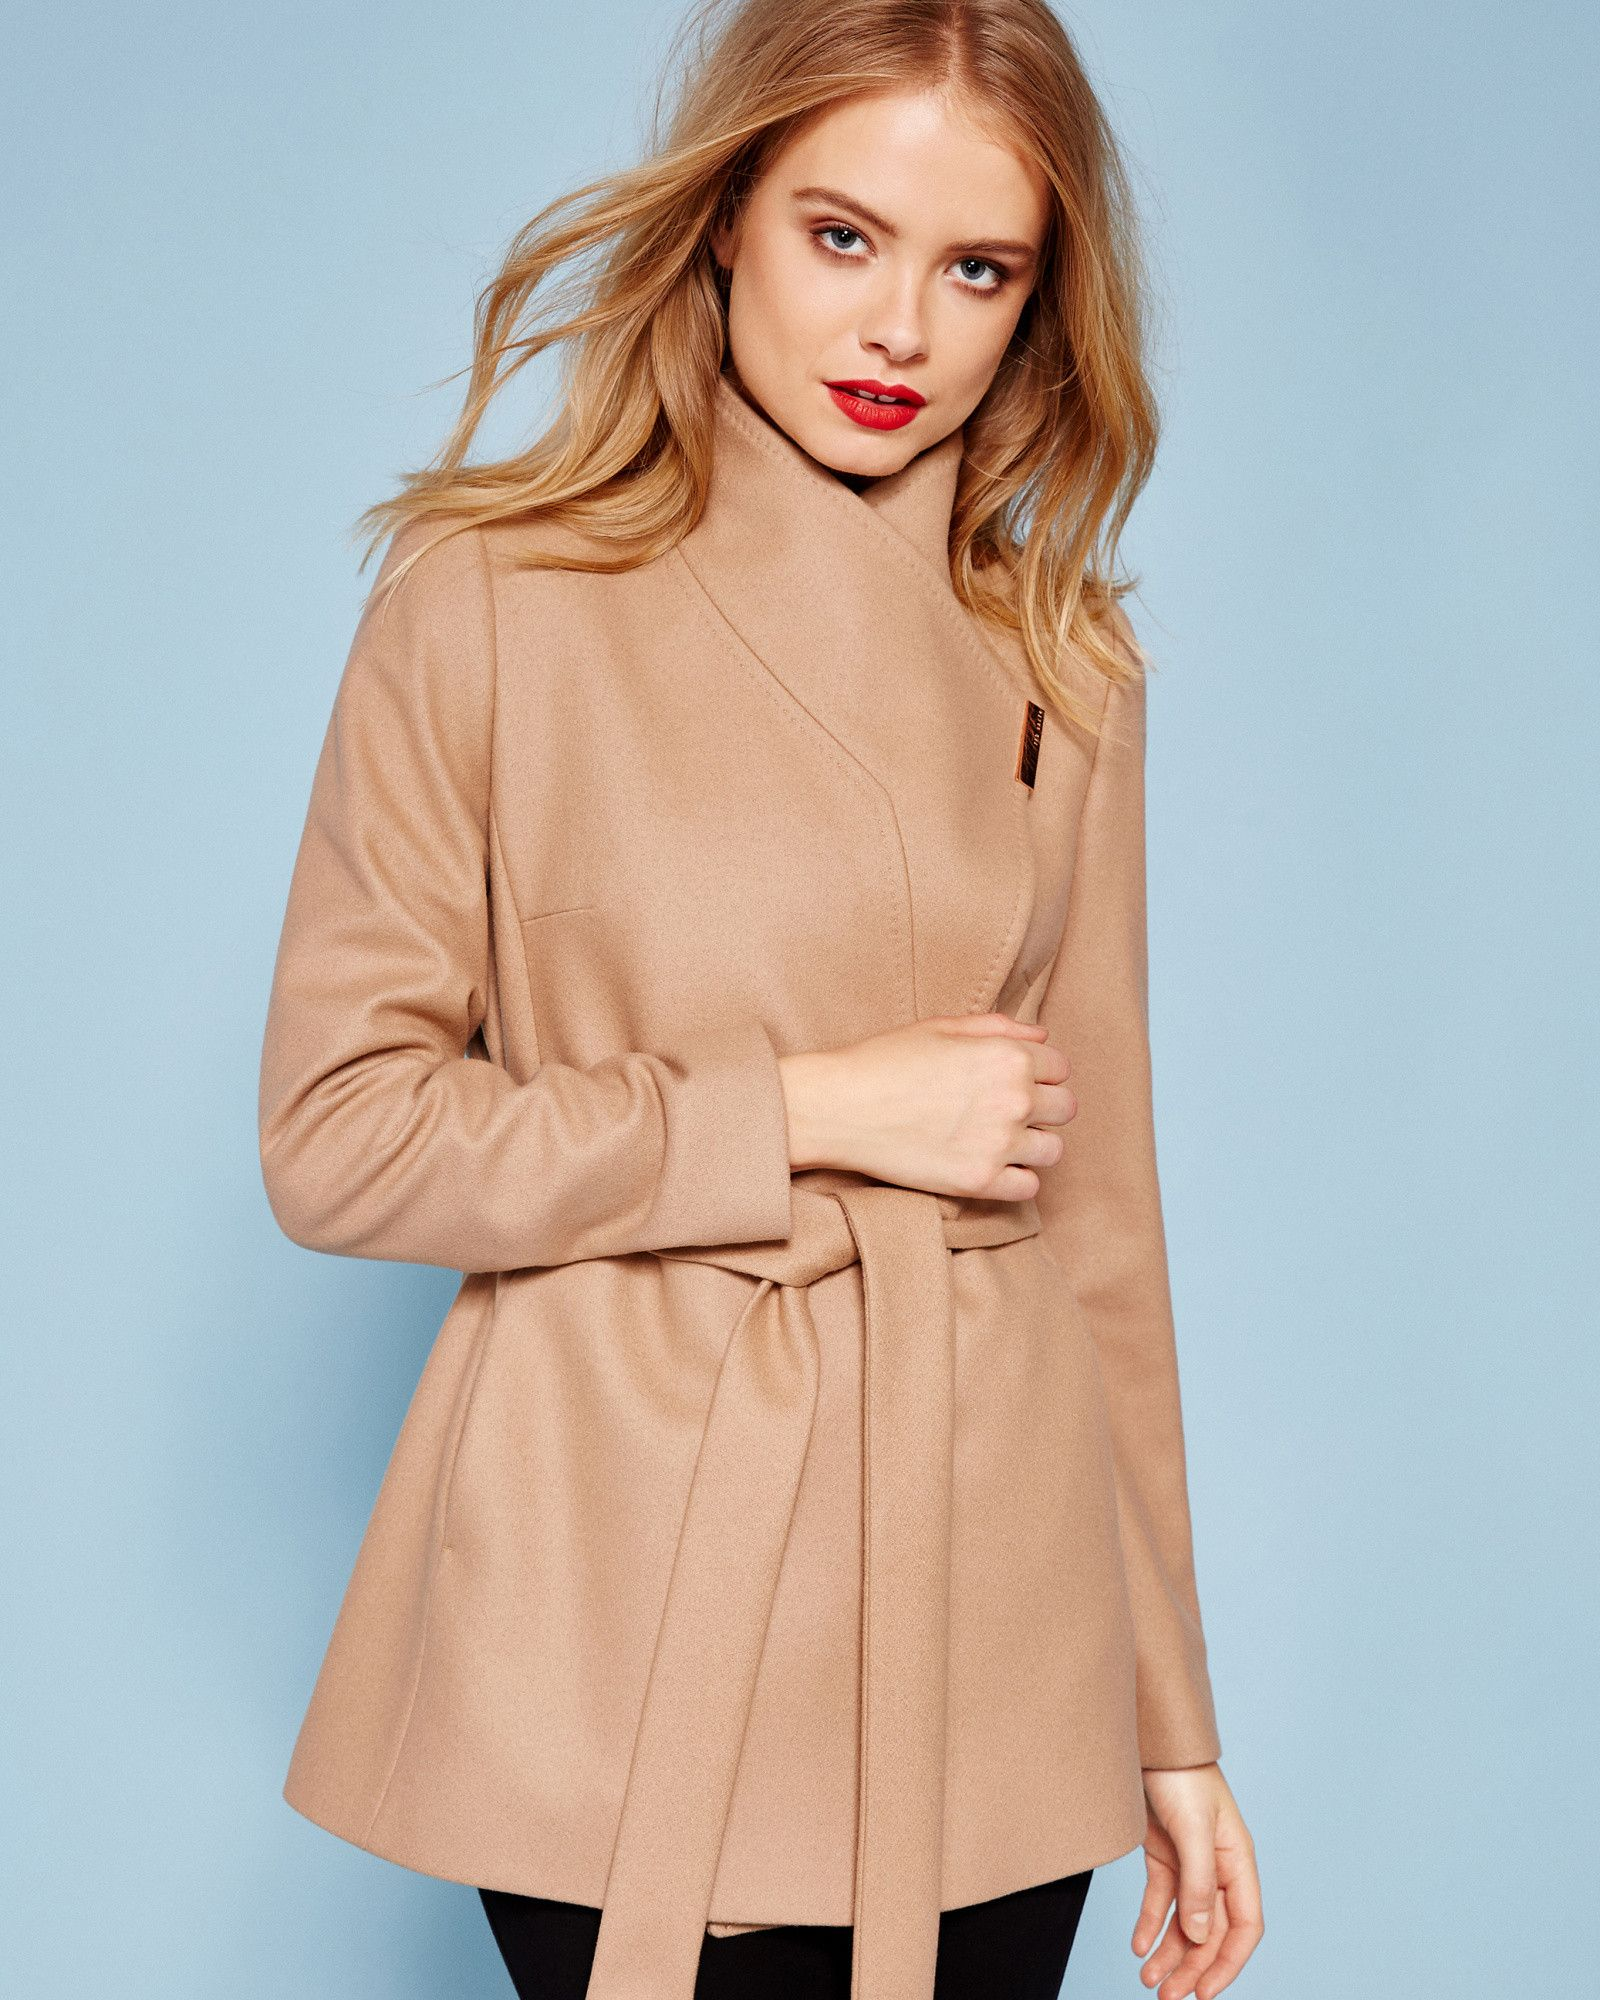 004d1842f KEYLA Short wrap cashmere-blend coat #TedToToe | Outfits and ...